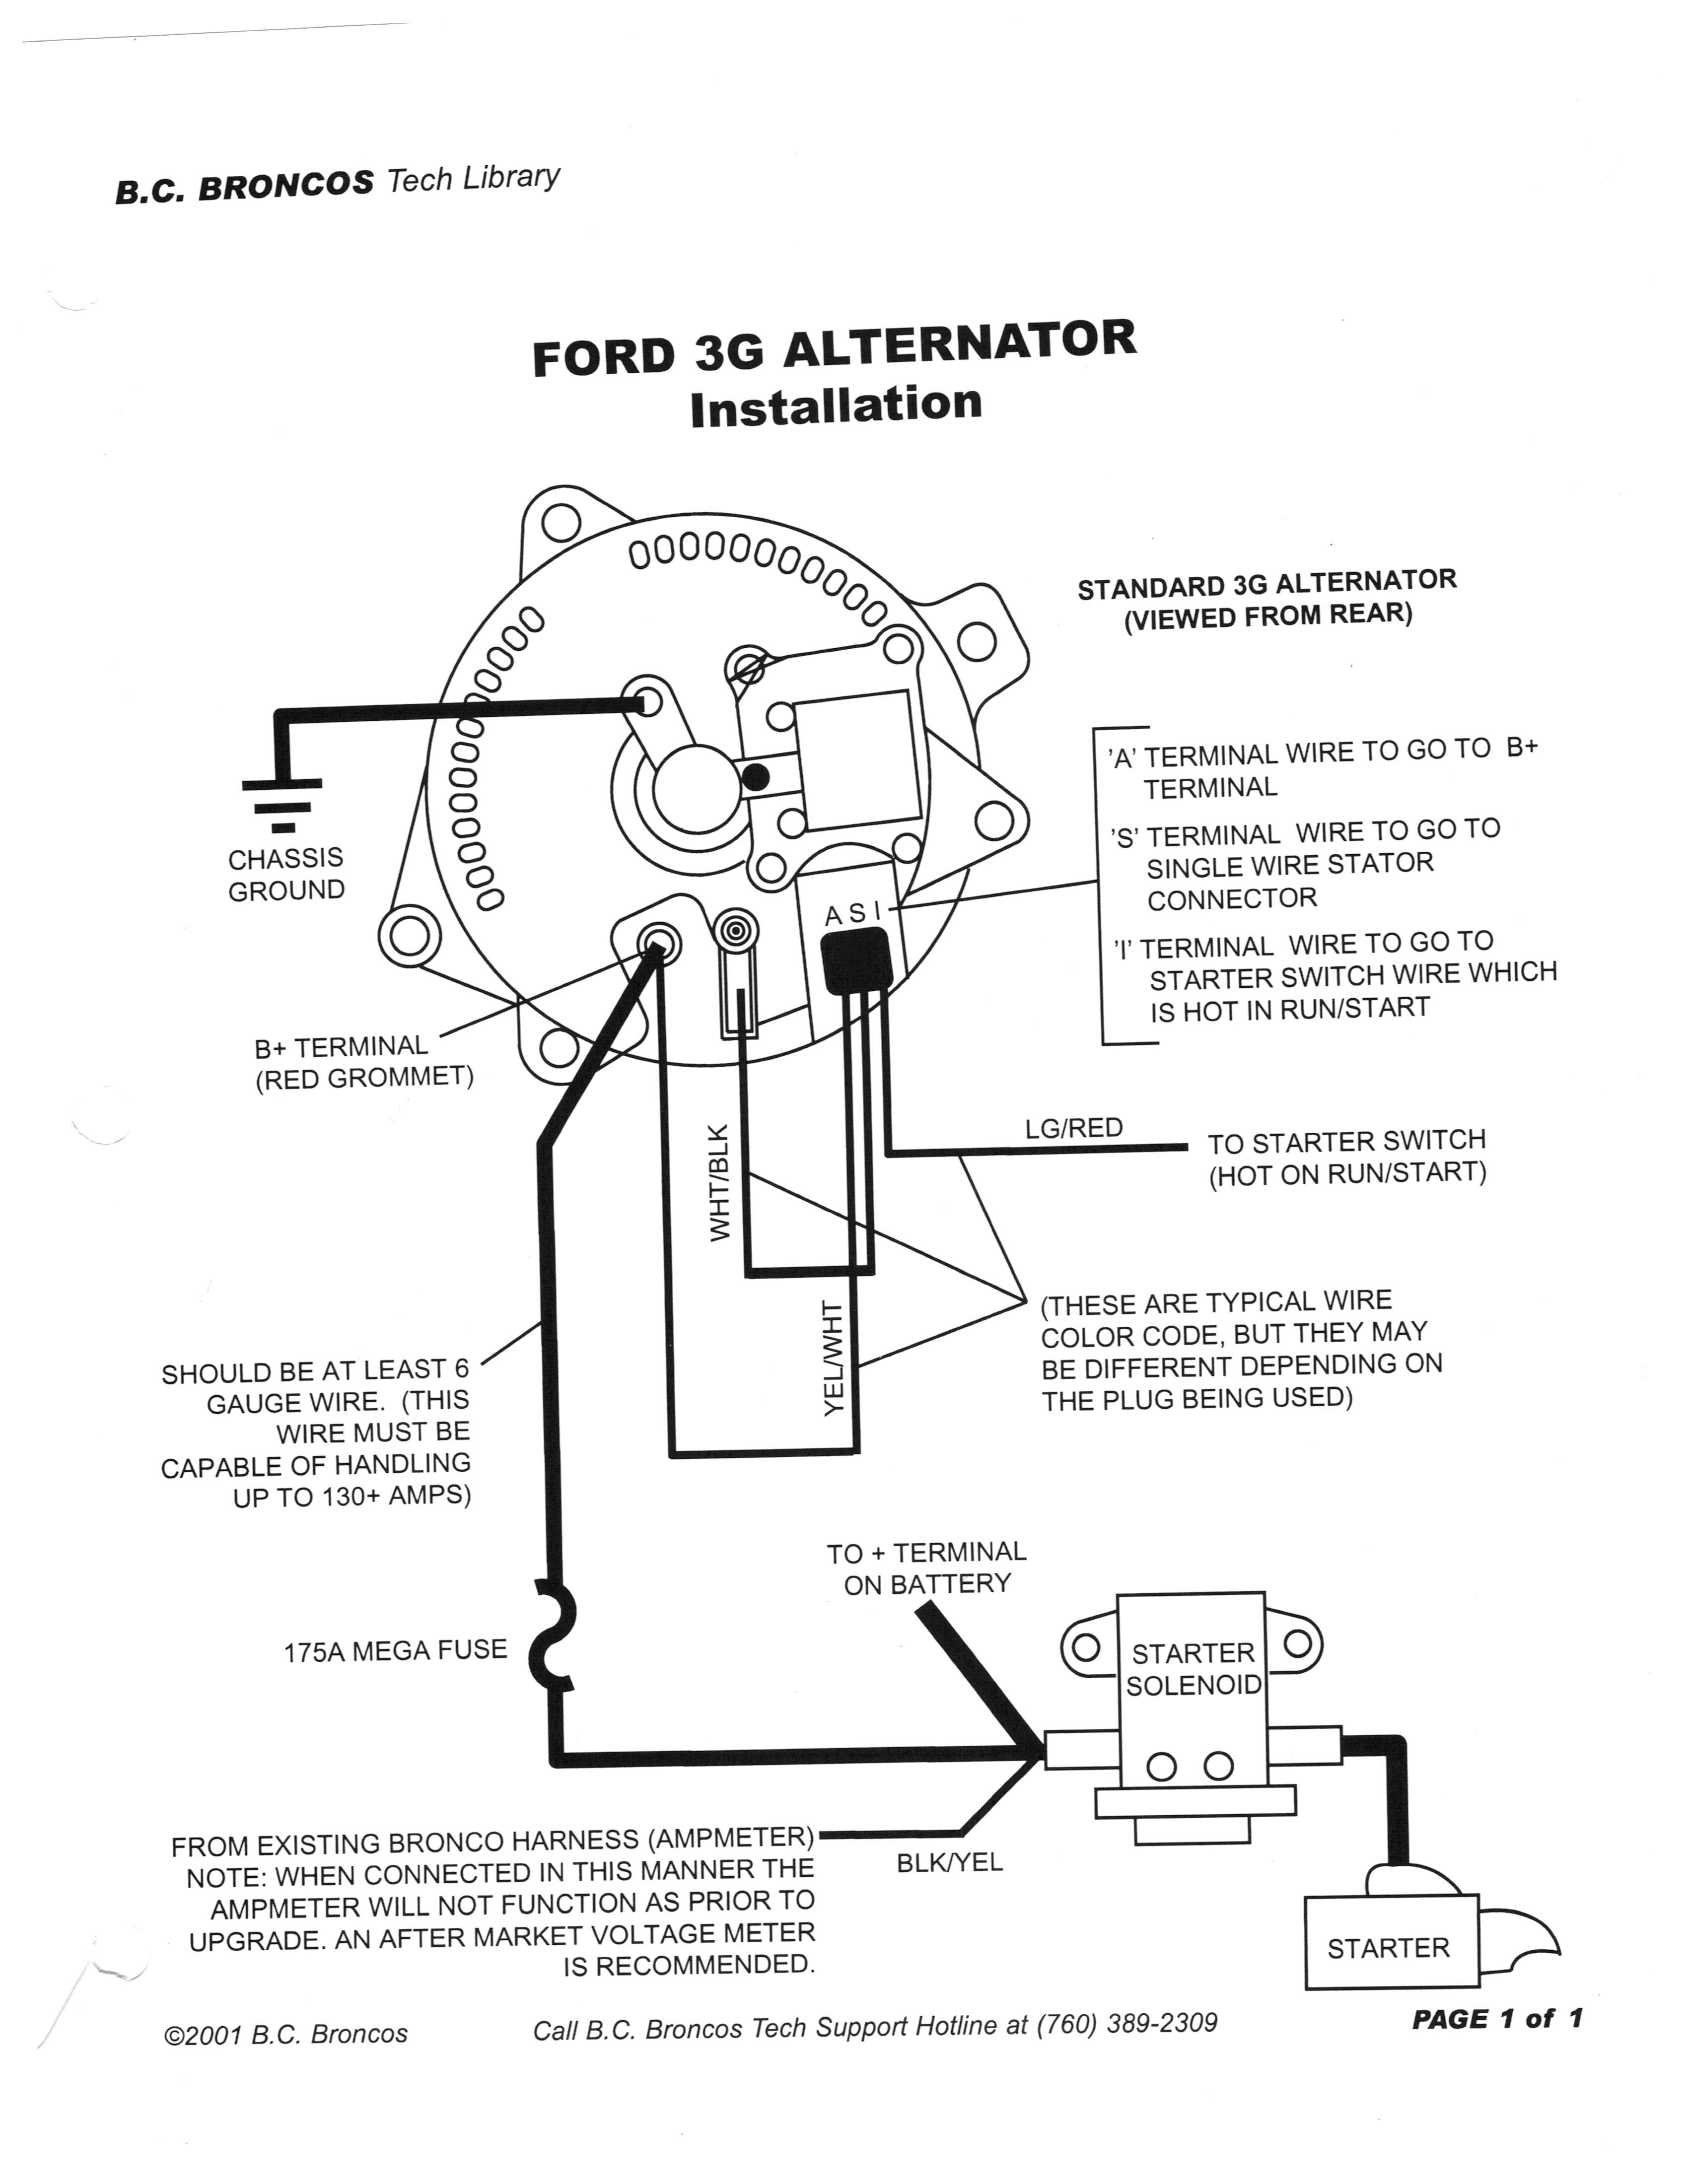 Taurus 605b2 Schematics Ford 1g To 3g Alternator Wiring Harness Diagram Libraries Coyote Detailedcoyote Library Mercury Outboard